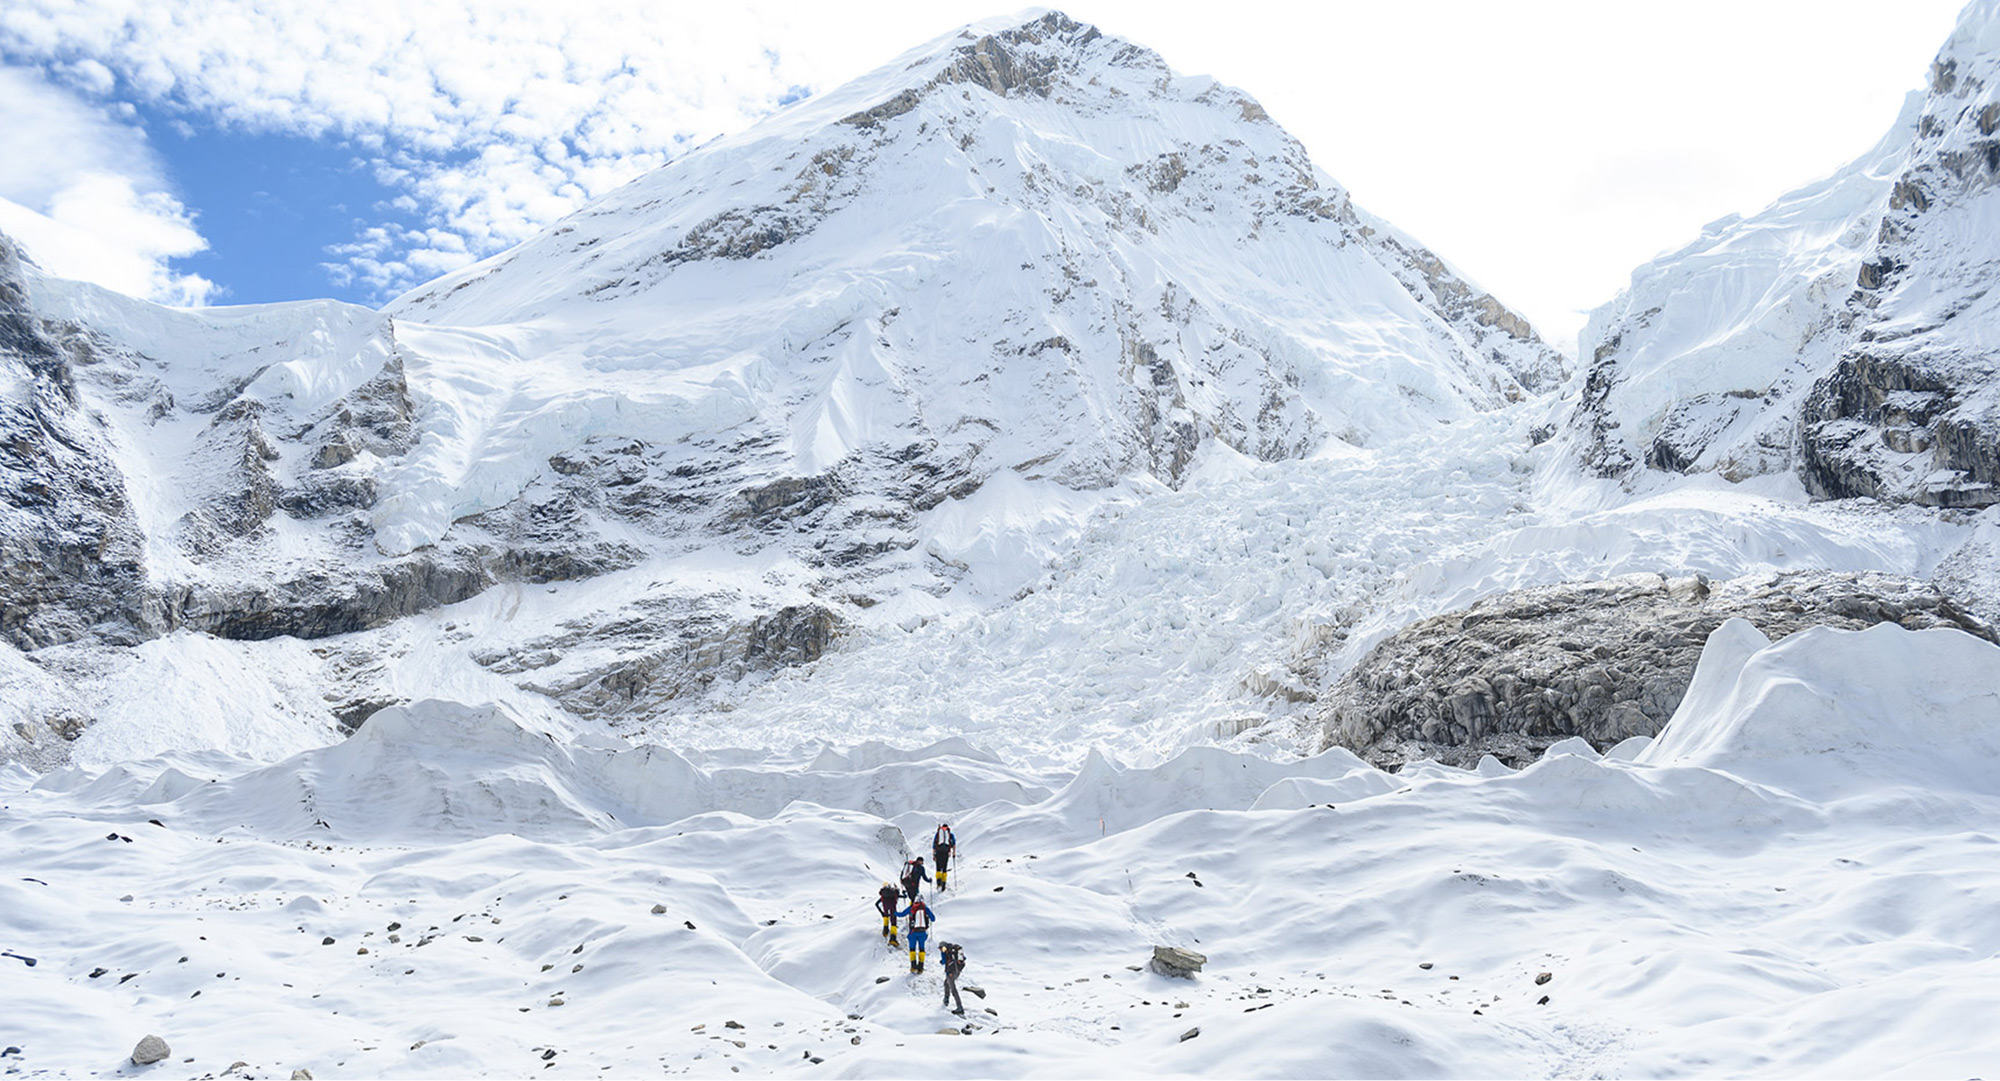 Everest Base Camp - into the Icefall